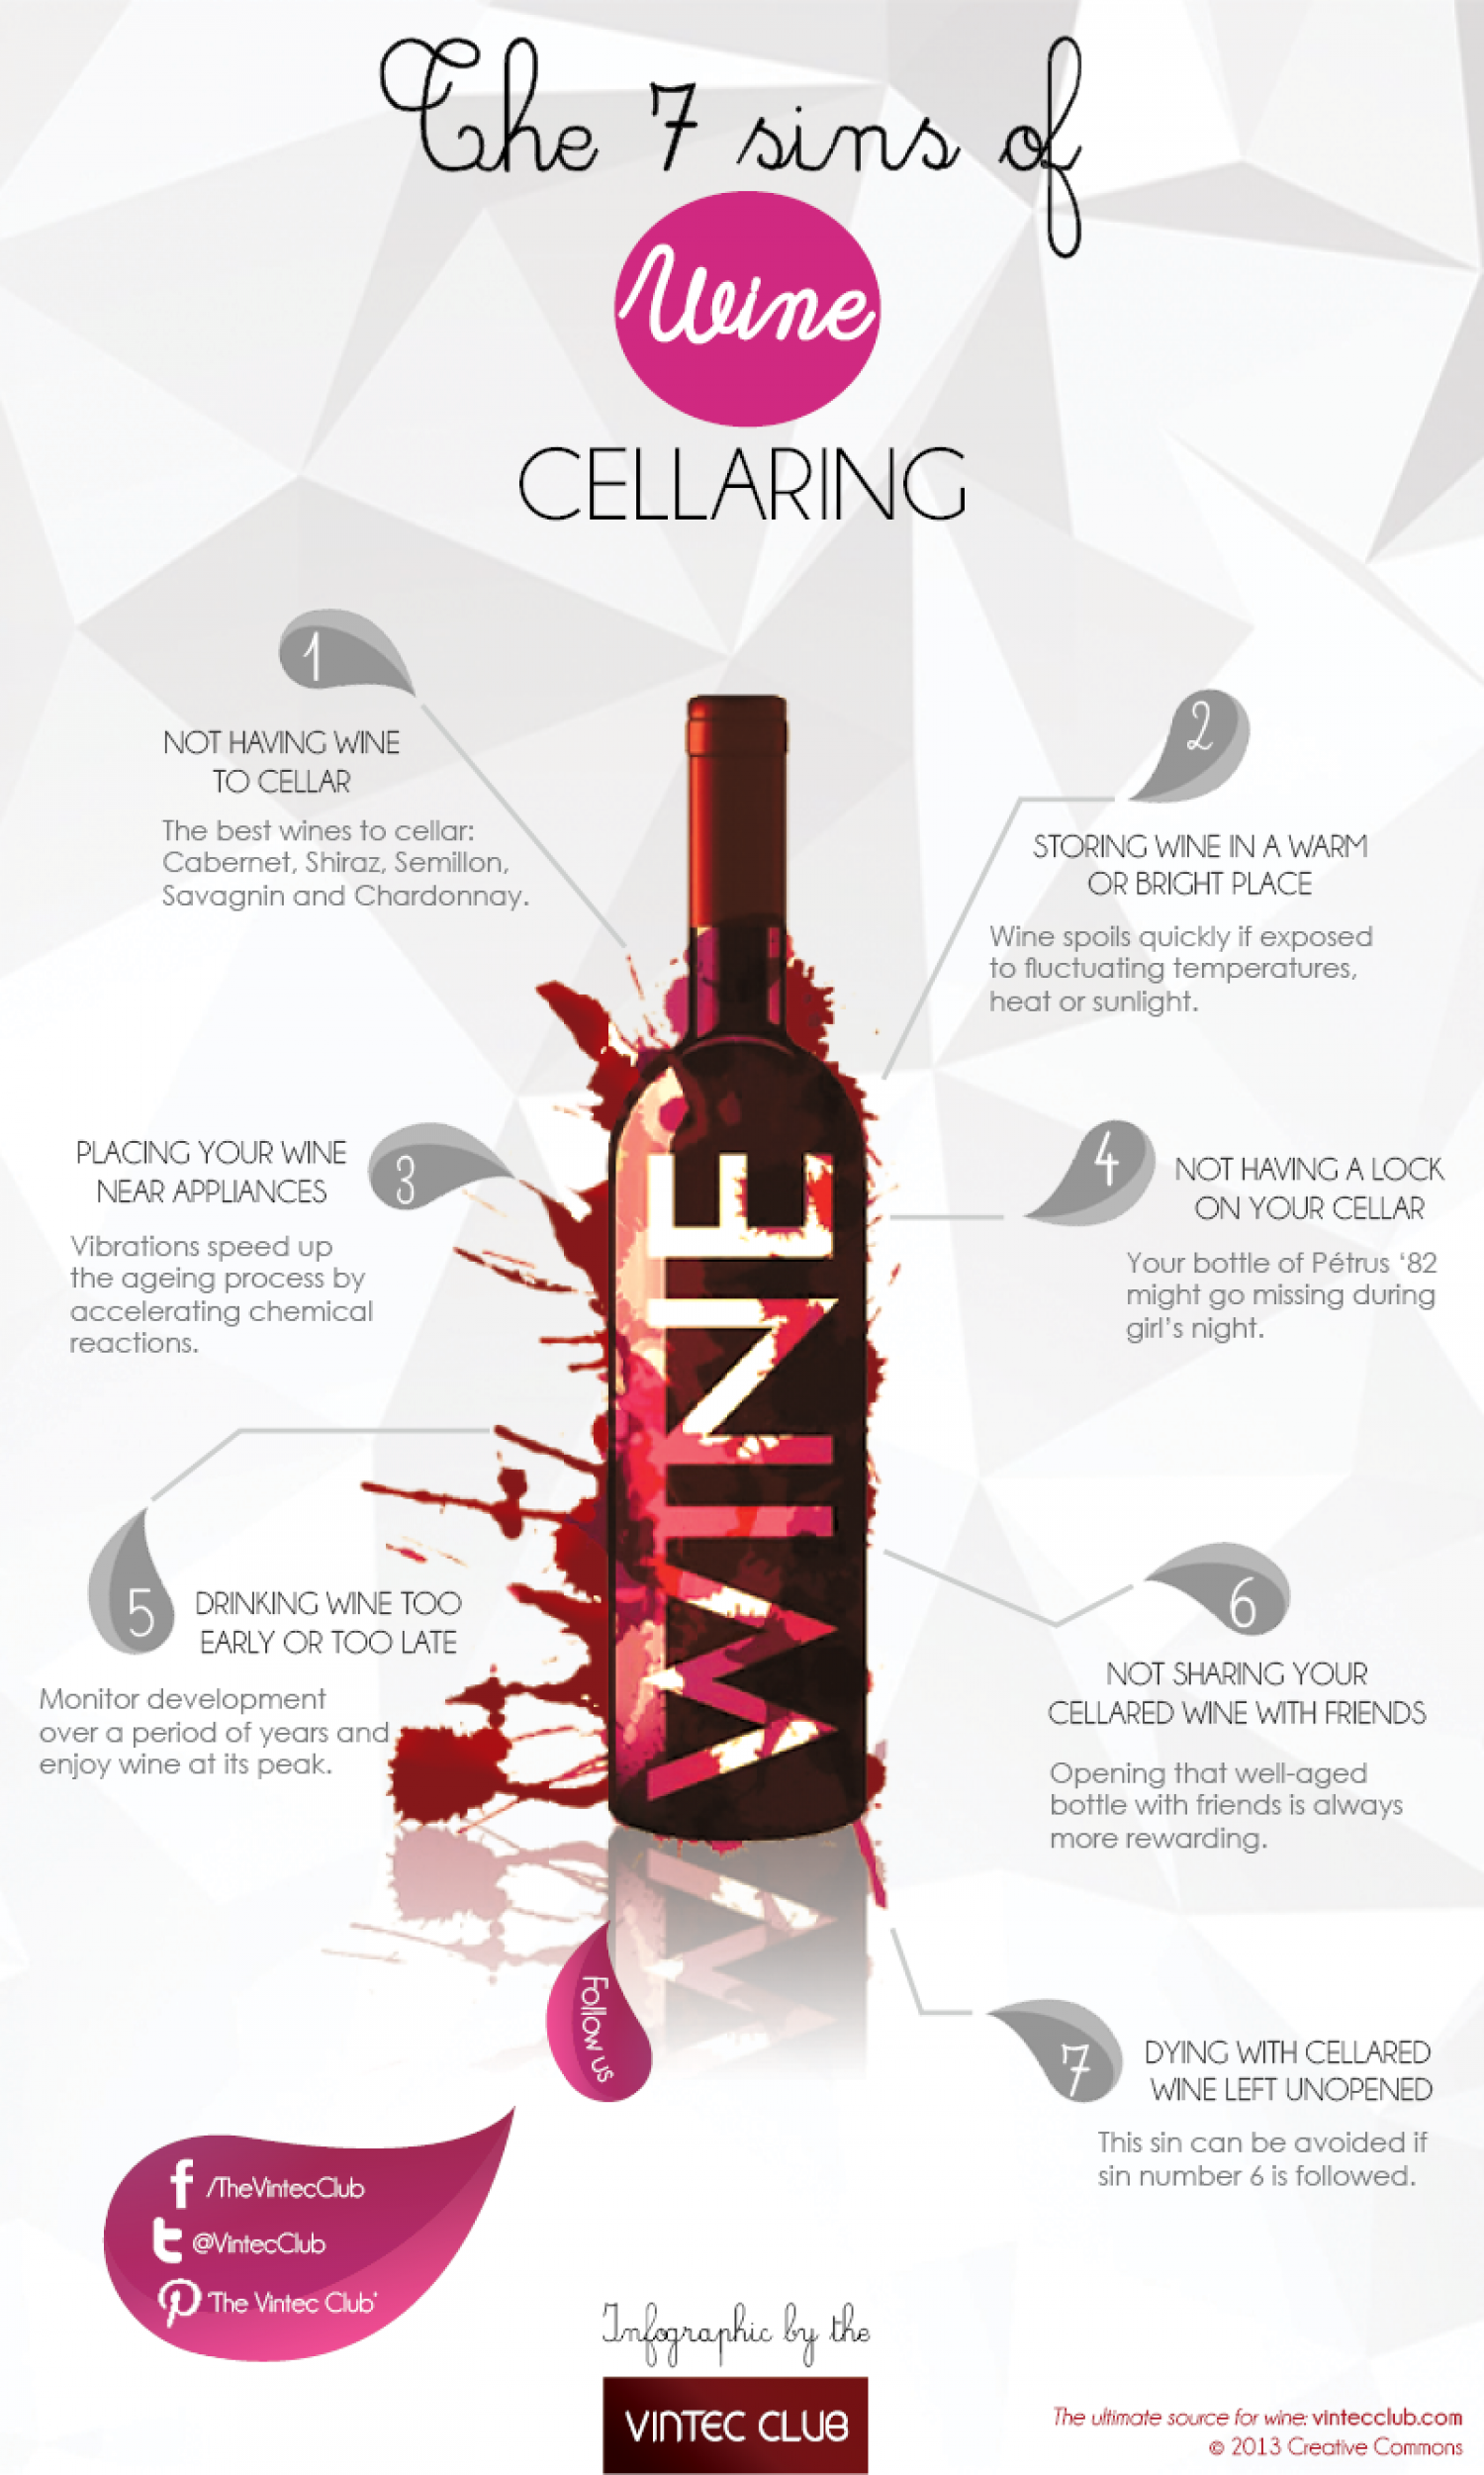 The 7 Sins Of Wine Cellaring Infographic